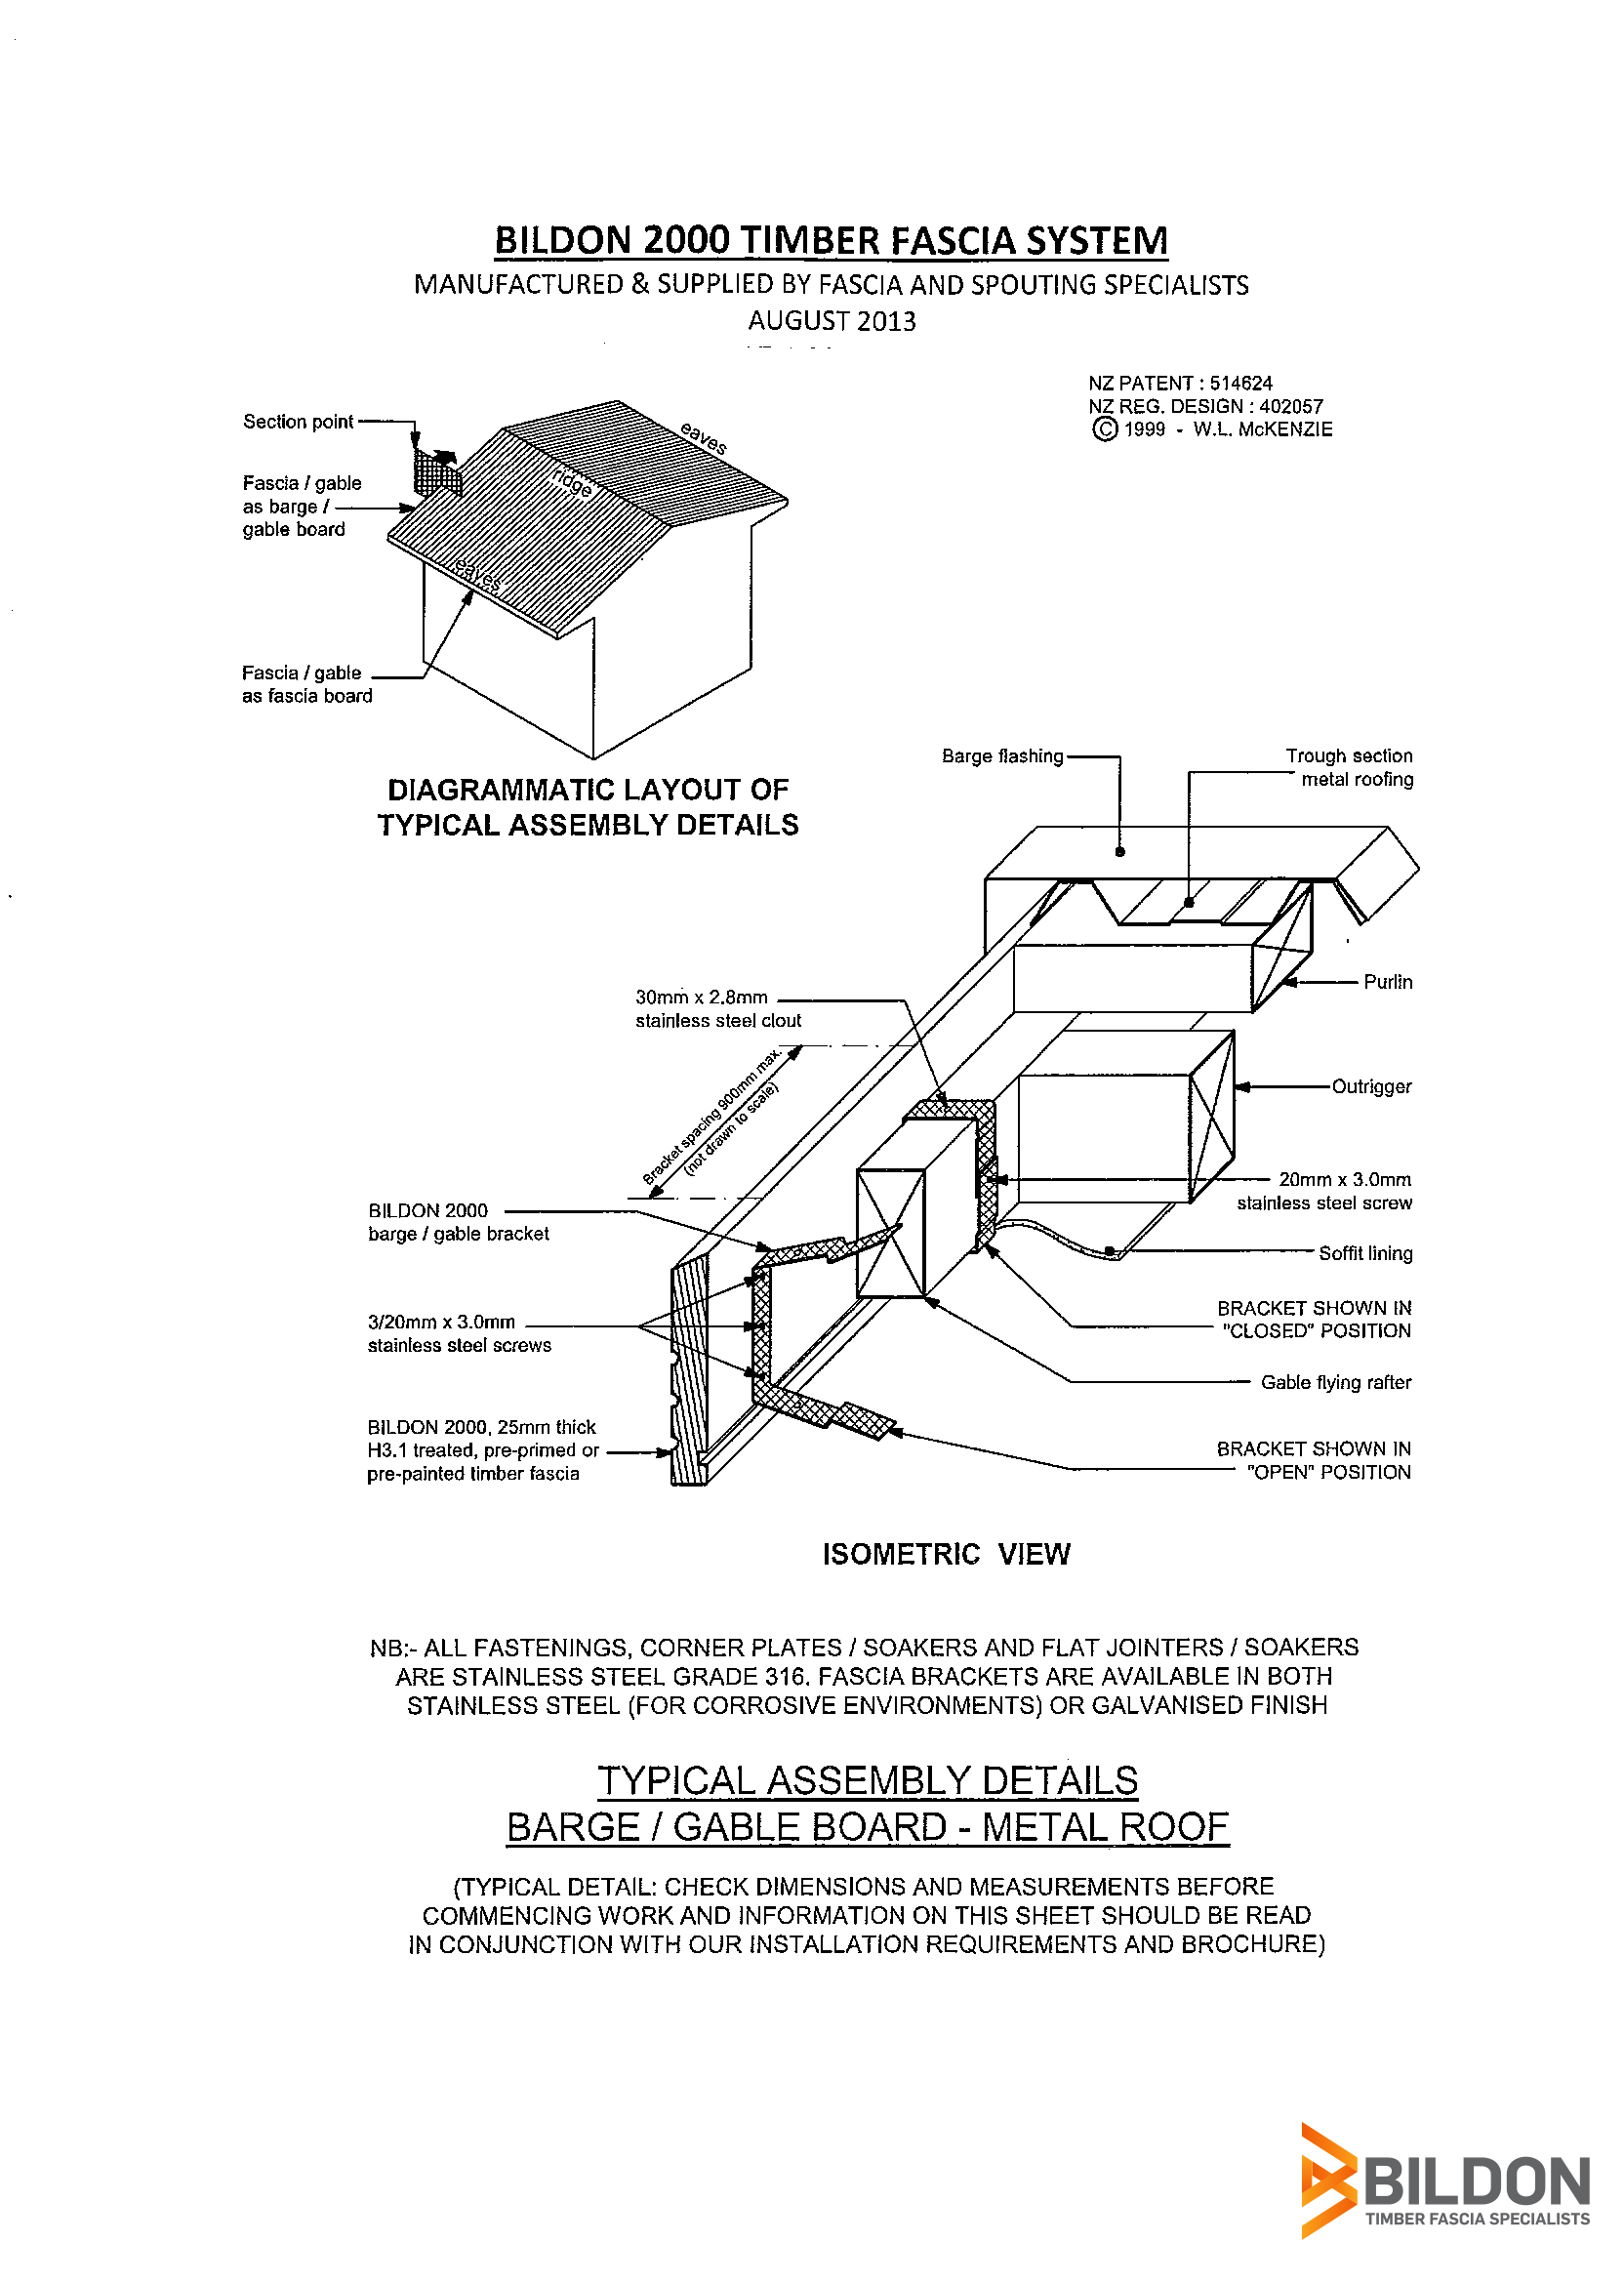 Typical Assembly Details Barge:Gable Board - Metal Roof.jpg